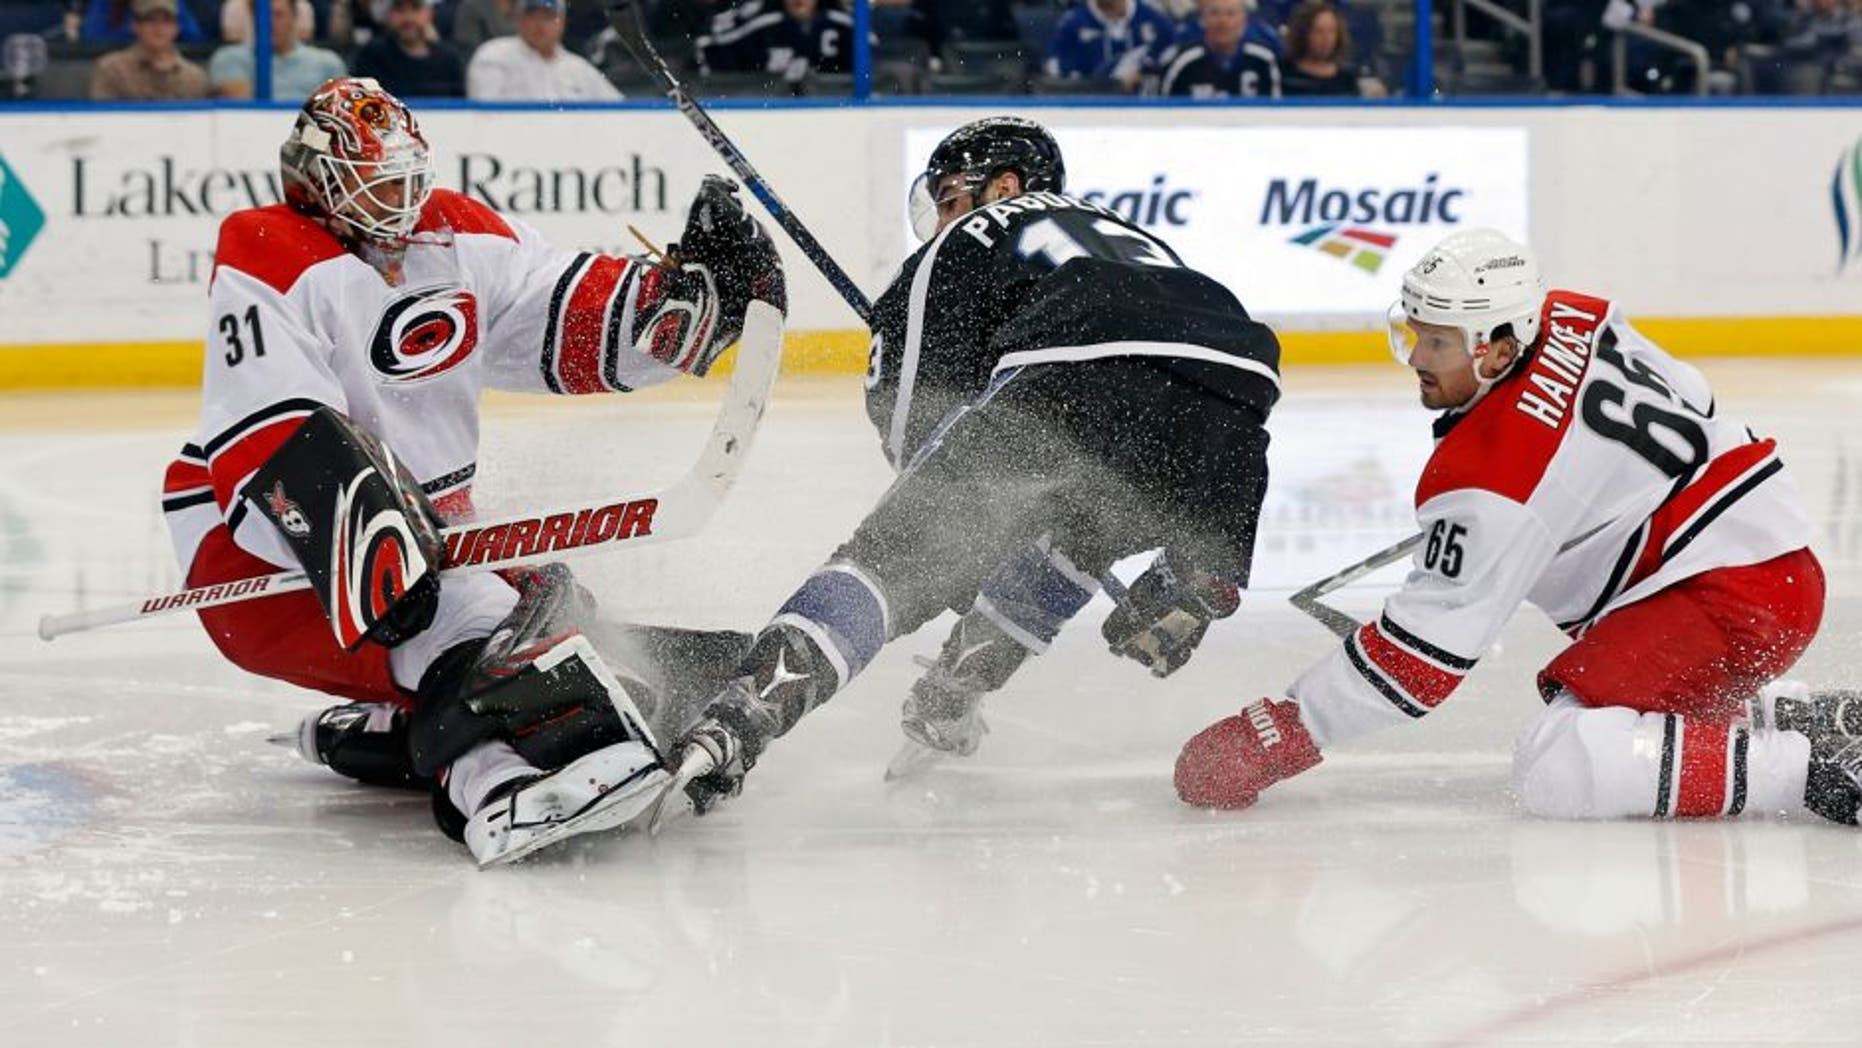 Carolina Hurricanes goalie Eddie Lack (31), of Sweden, makes a save on Tampa Bay Lightning's Cedric Paquette, as Hurricanes' Ron Hainsey defends during the second period of an NHL hockey game Saturday, March 5, 2016, in Tampa, Fla. (AP Photo/Mike Carlson)